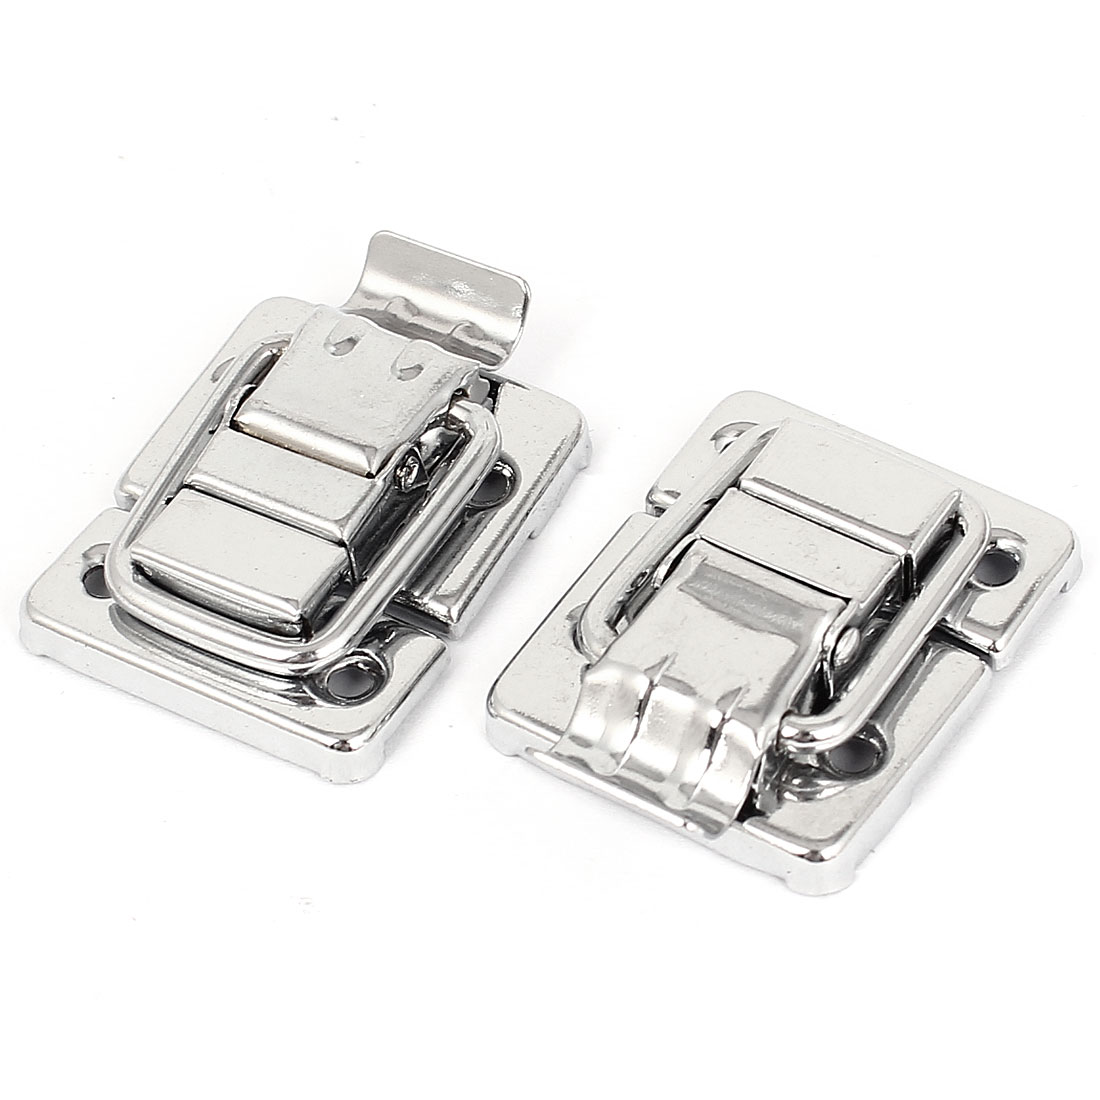 2 Pcs 43mmx30mm Toggle Catch Latch Trunk Chest Boxes Suitcase Clip Clasp